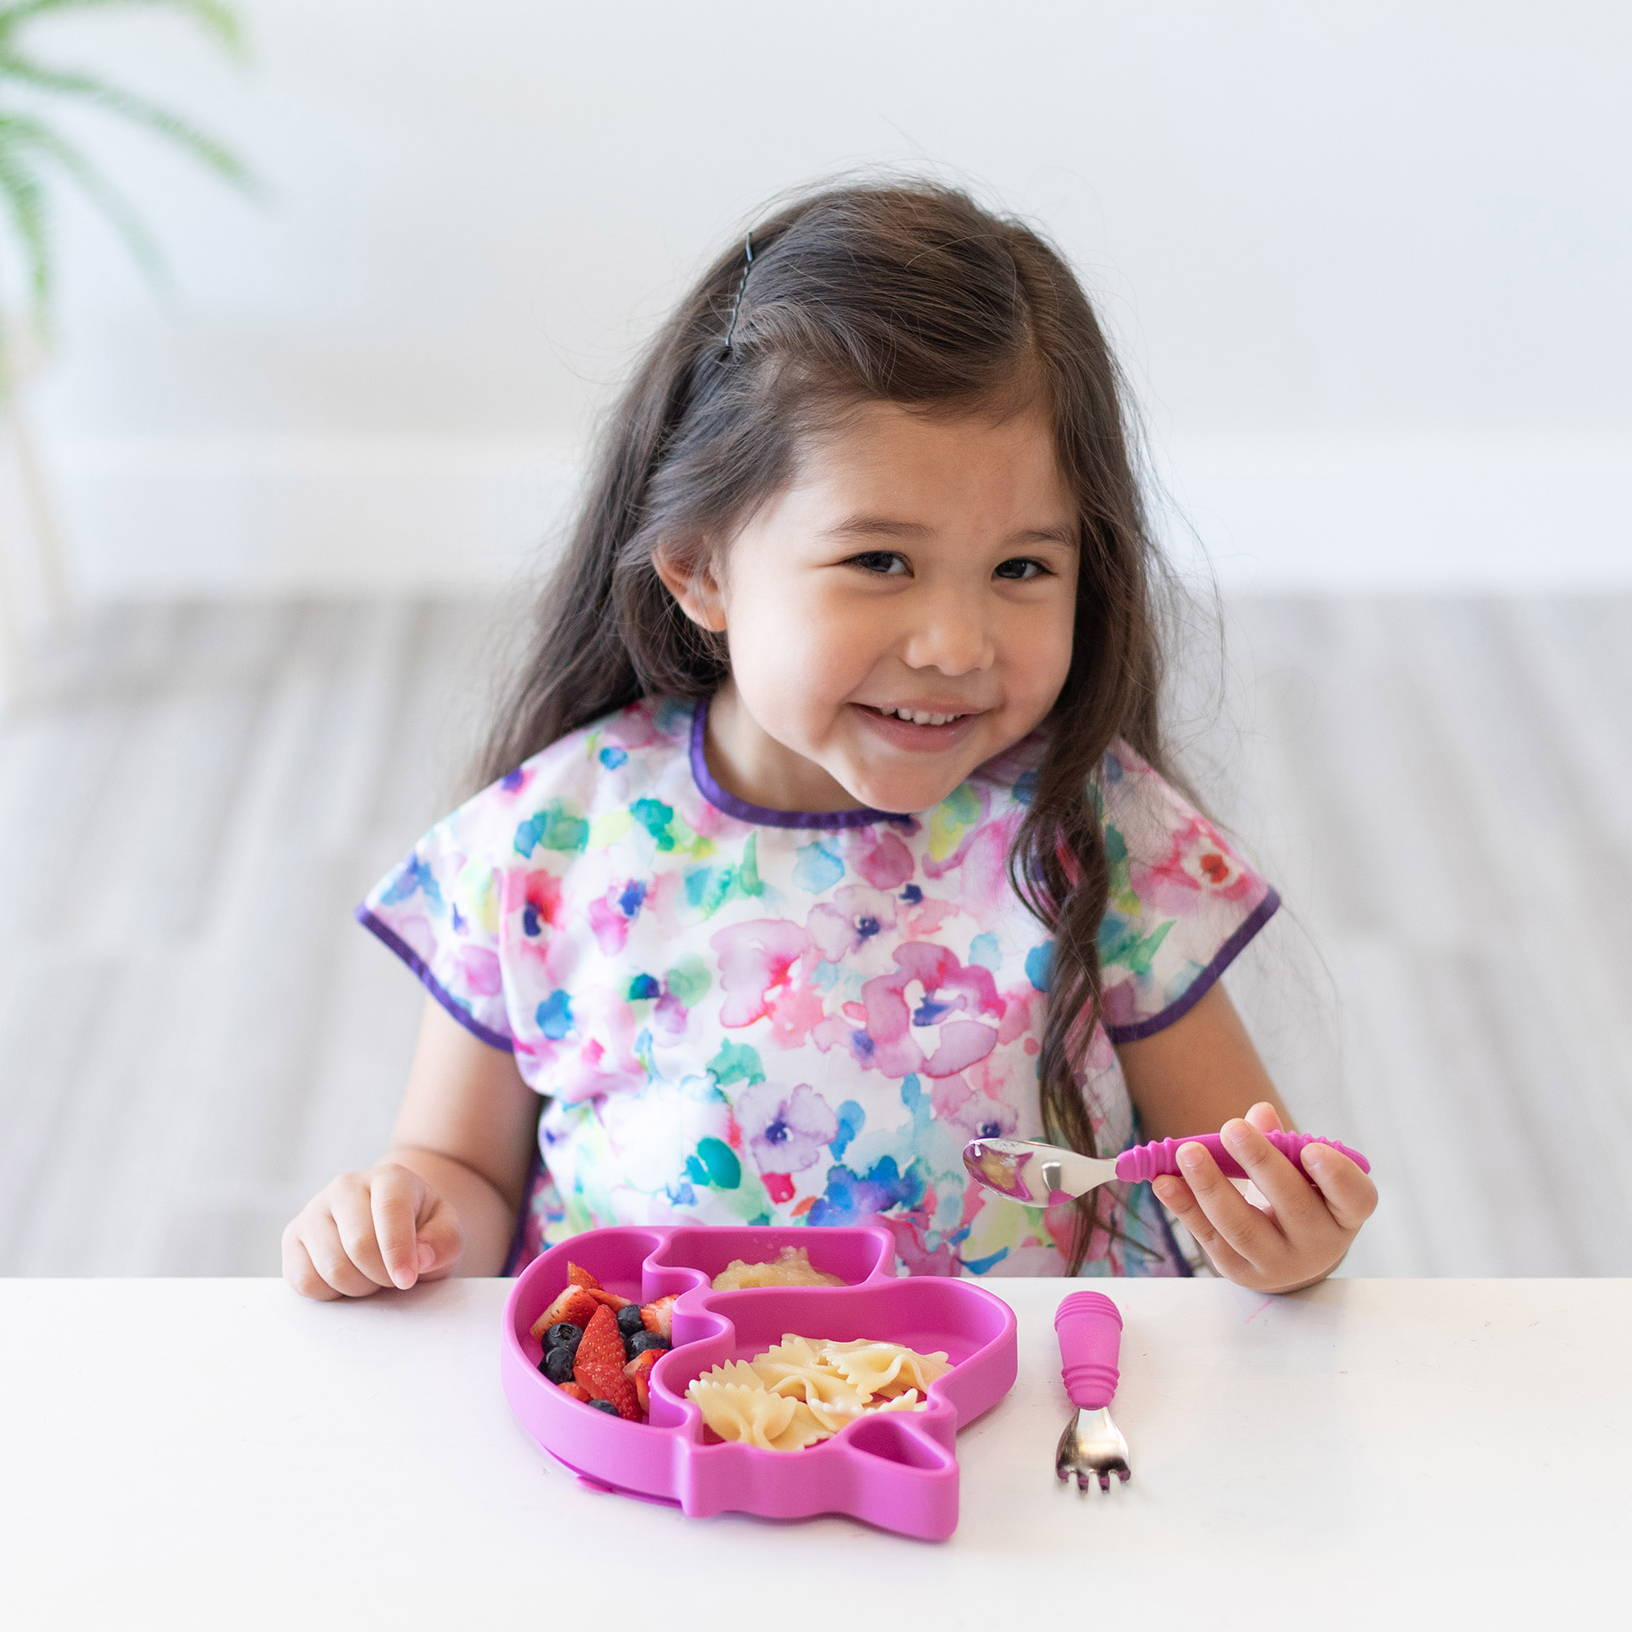 kid eating from unicorn plate with pink utensils